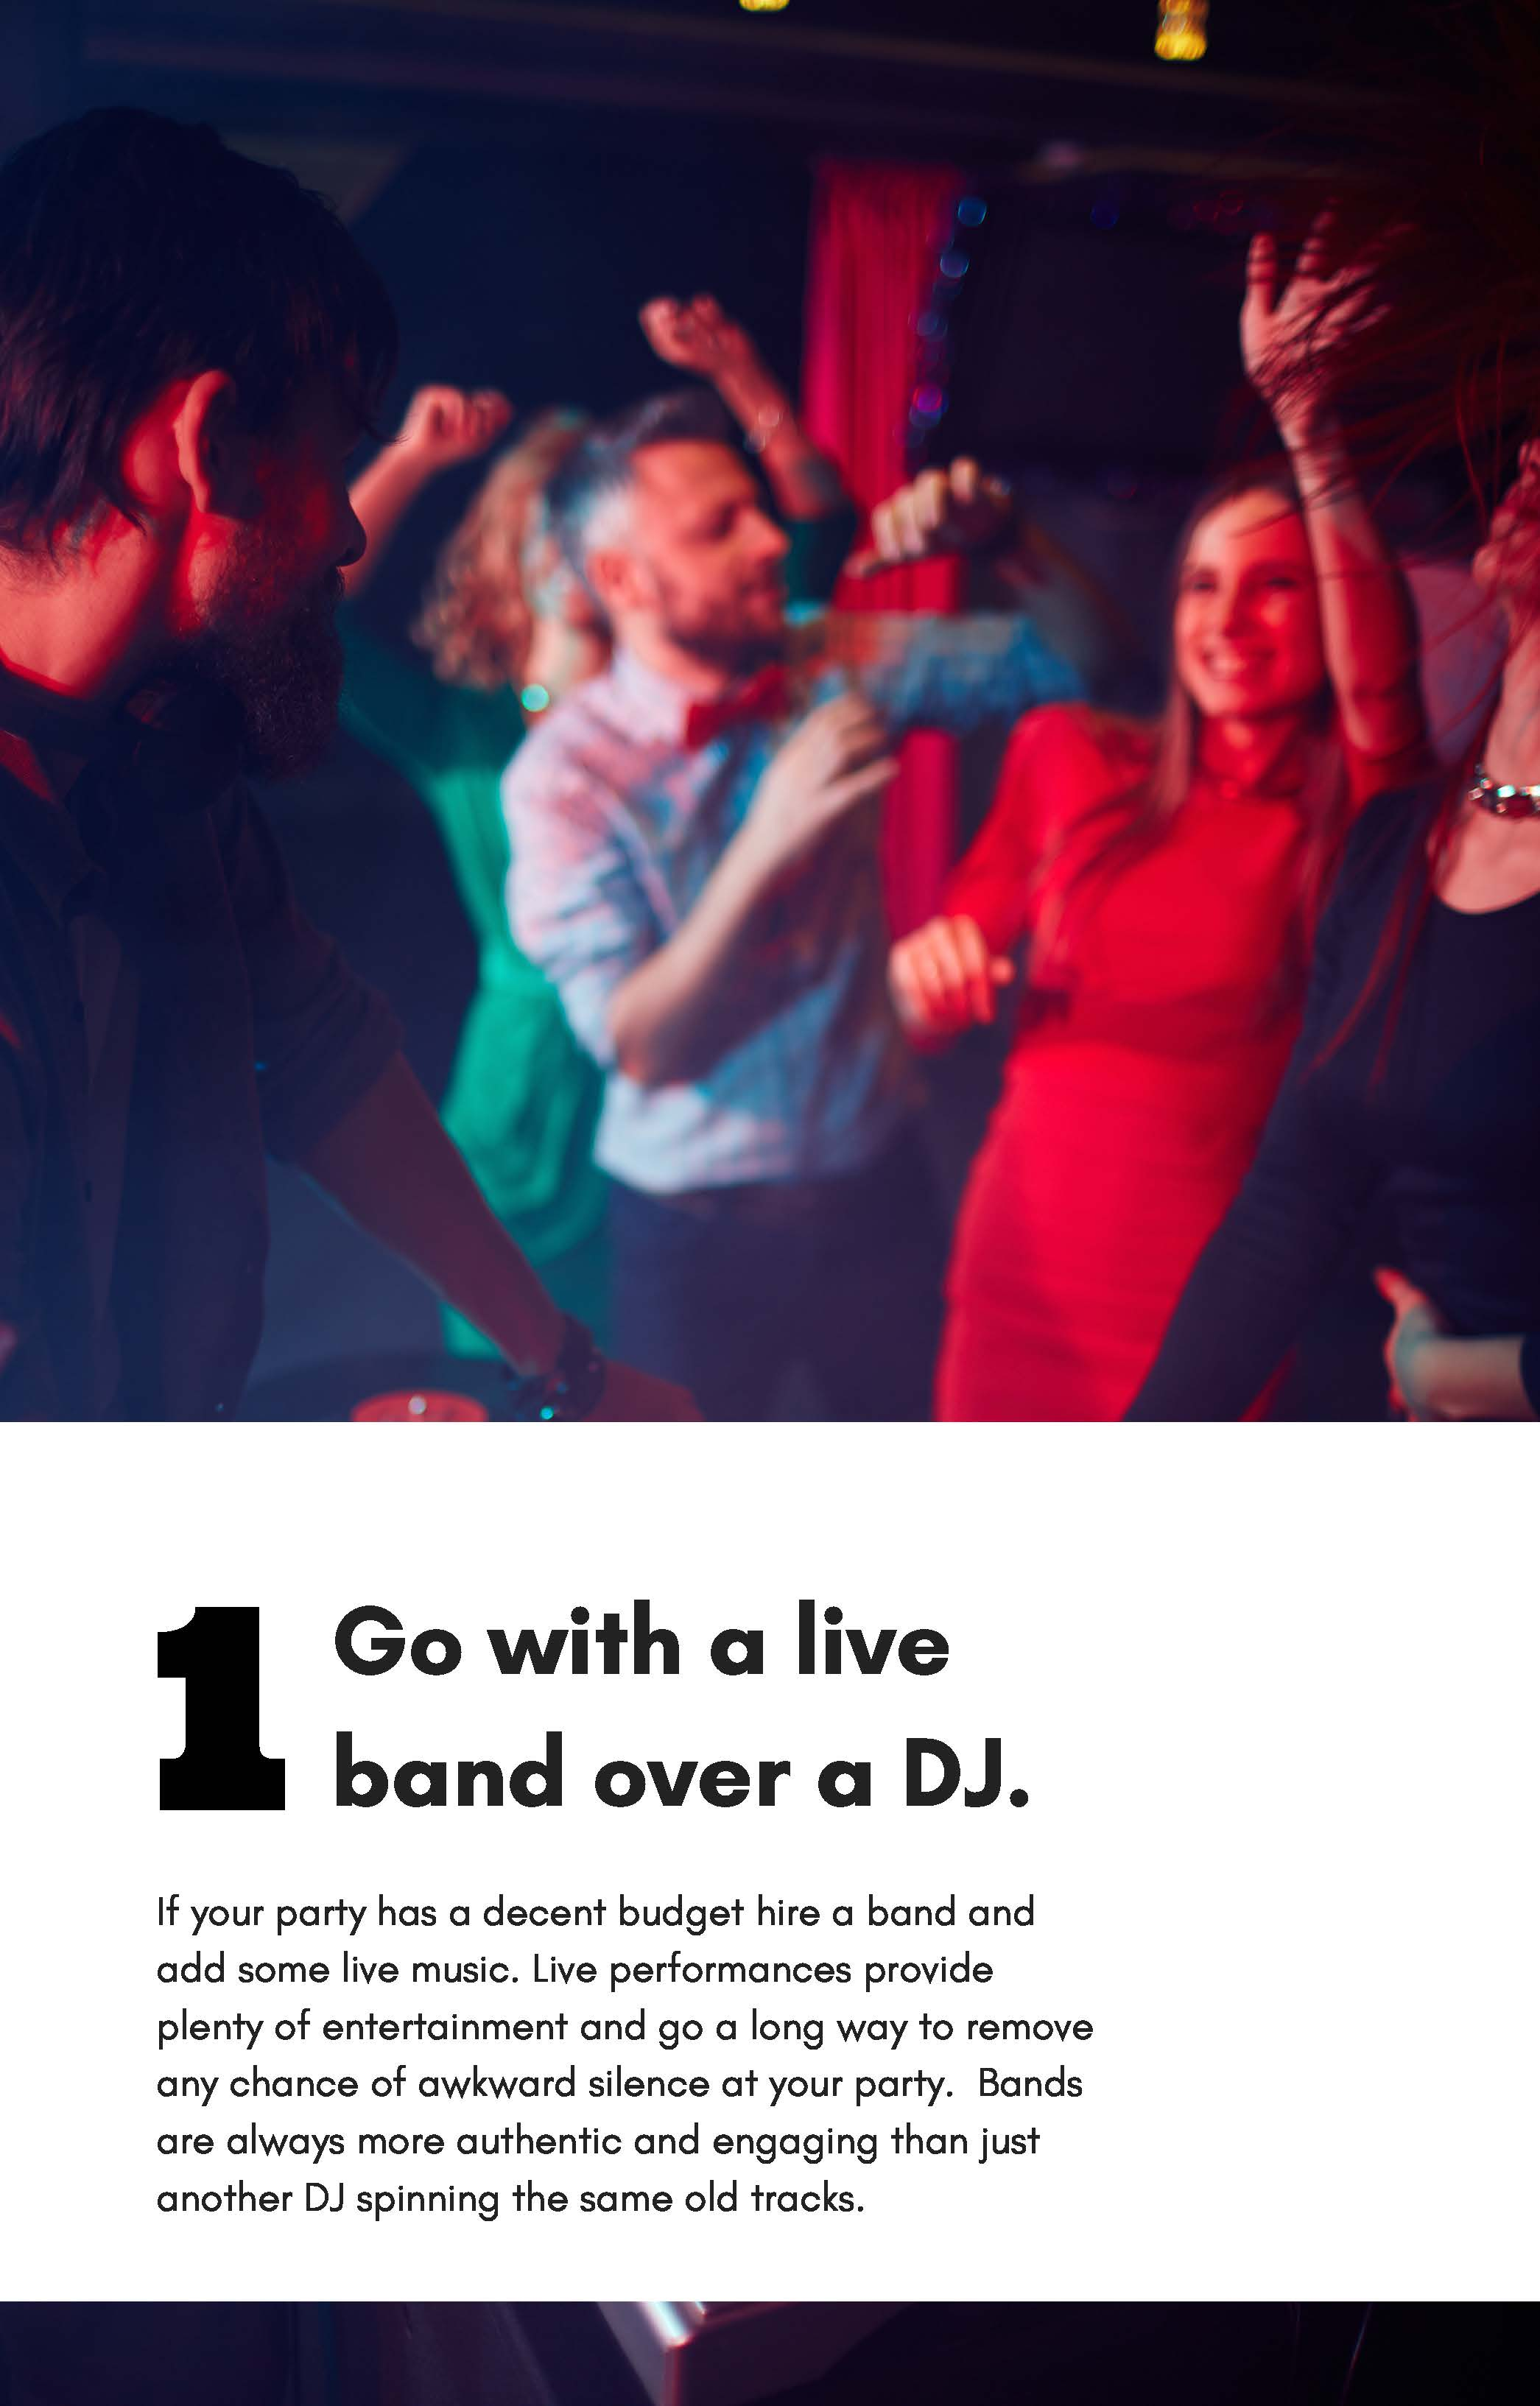 Go With a Live band over a DJ